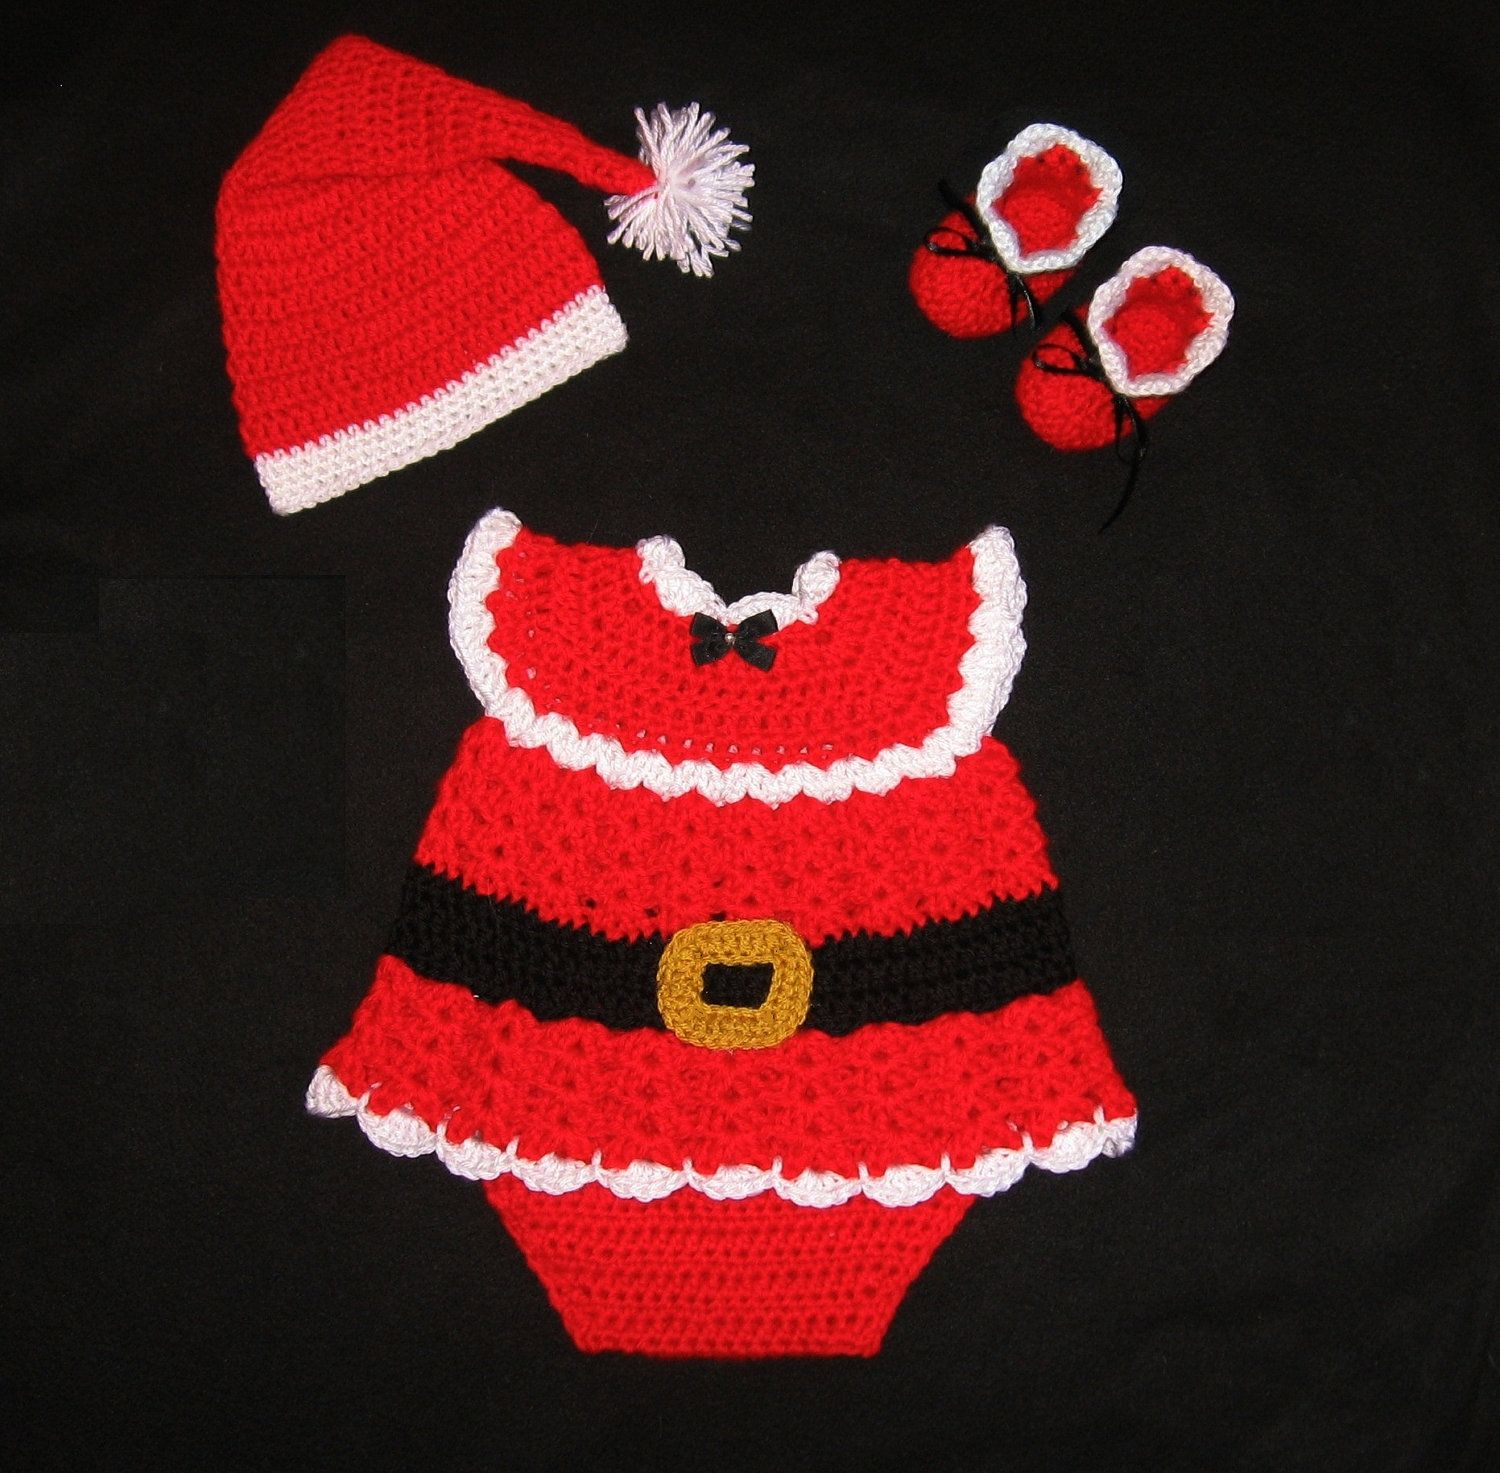 Baby Girl Crochet Santa Diaper Dress Set Christmas Baby Set Santa Claus  Dress Set.  30.00 b101654fc7e5